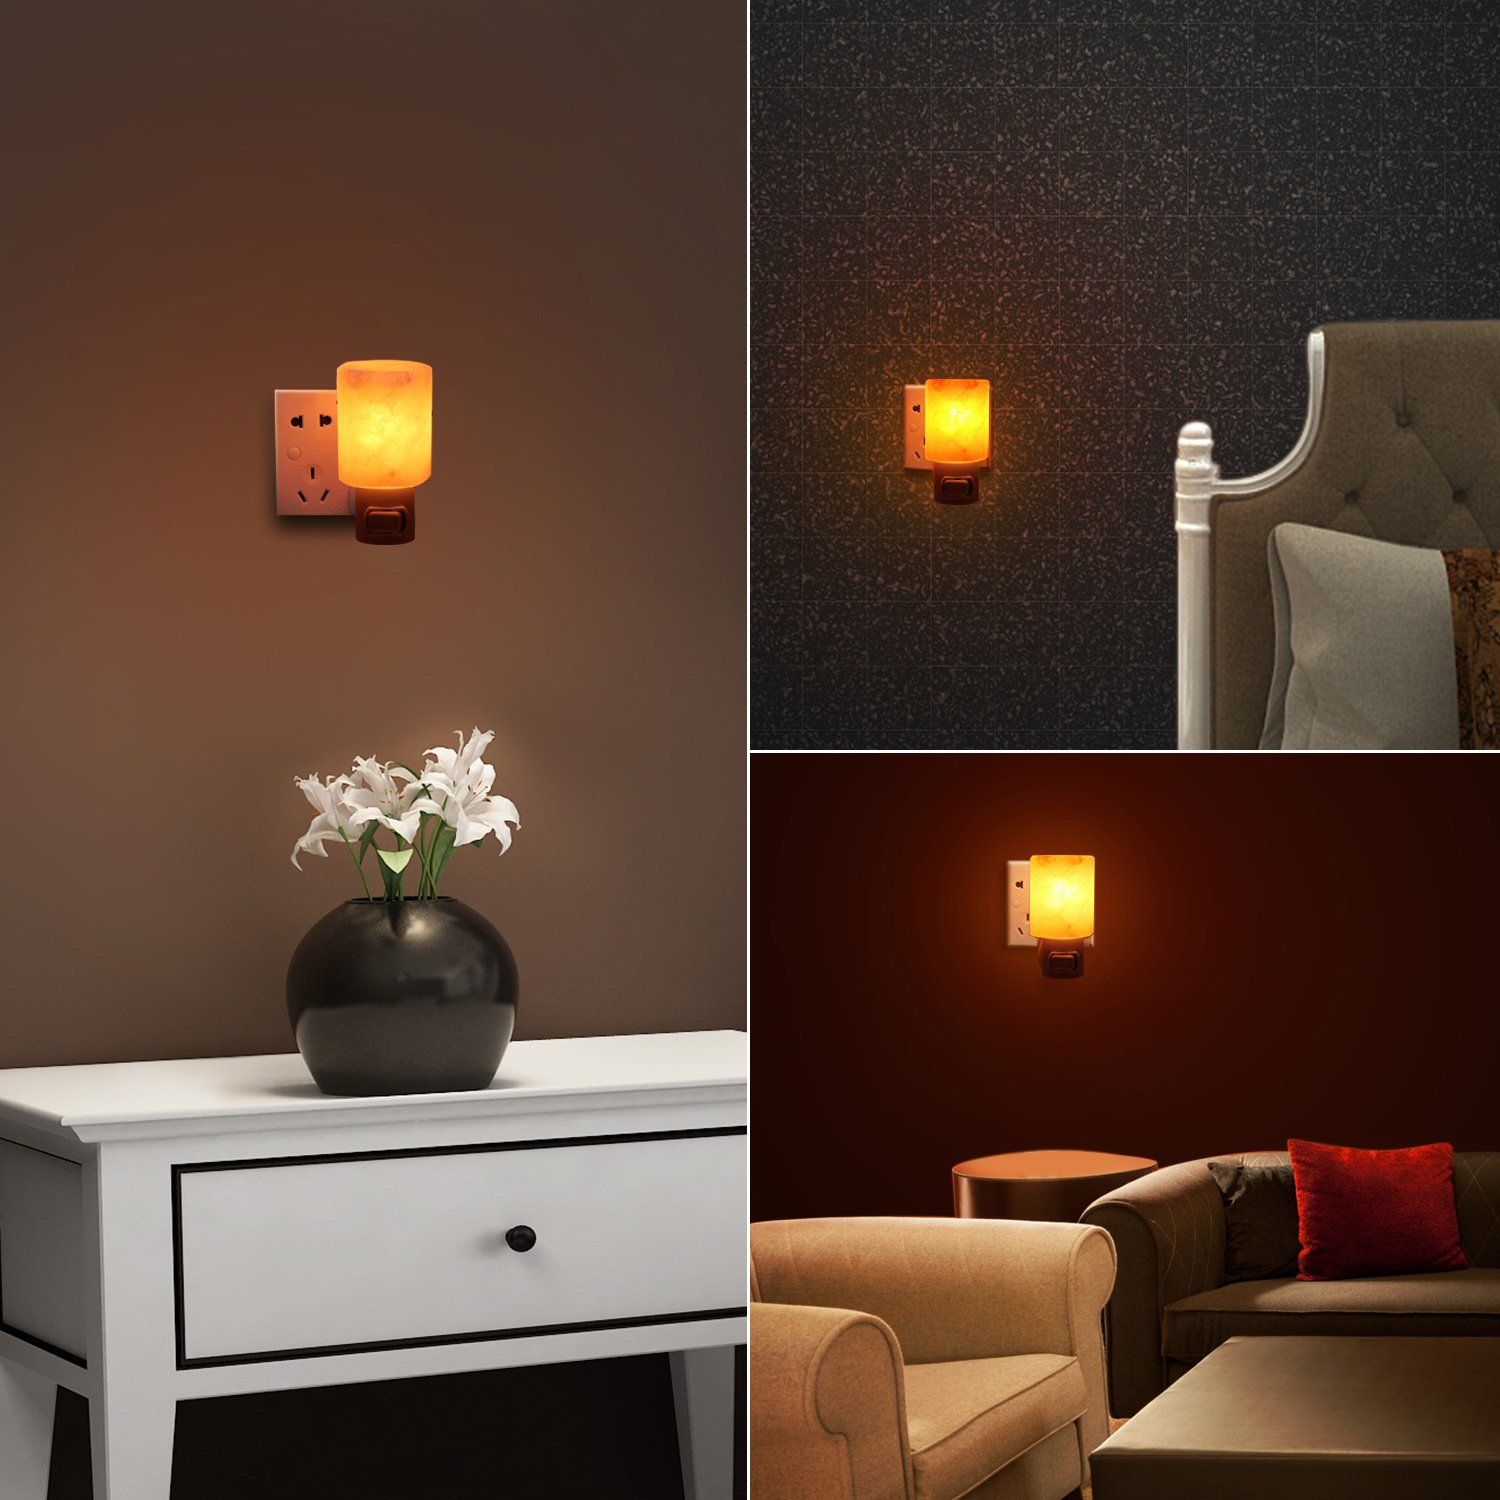 AMIR Salt Lamp, Natural Himalayan Crystal Salt Light with 2 Bulbs (1 Colorful Bulb), 11.2 Ounces Mini Hand Carved Night Light with UL-Approved Wall Plug for Air Purifying, Lighting and Decoration by AMIR (Image #2)